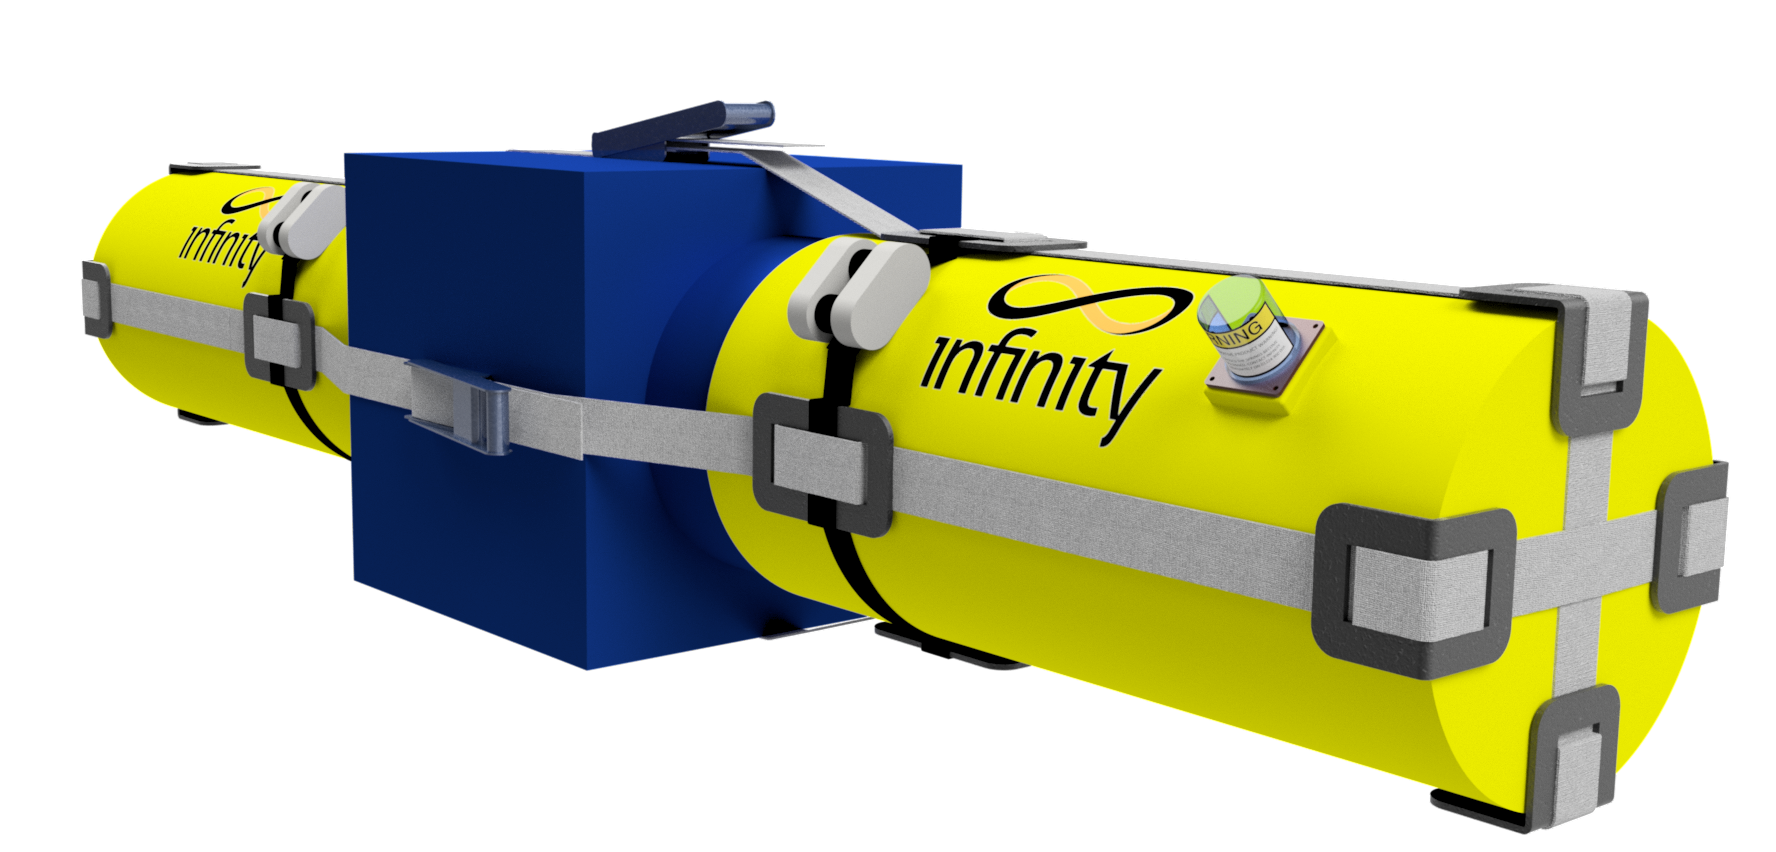 Infinity  - Actuator Safety Gauntlet